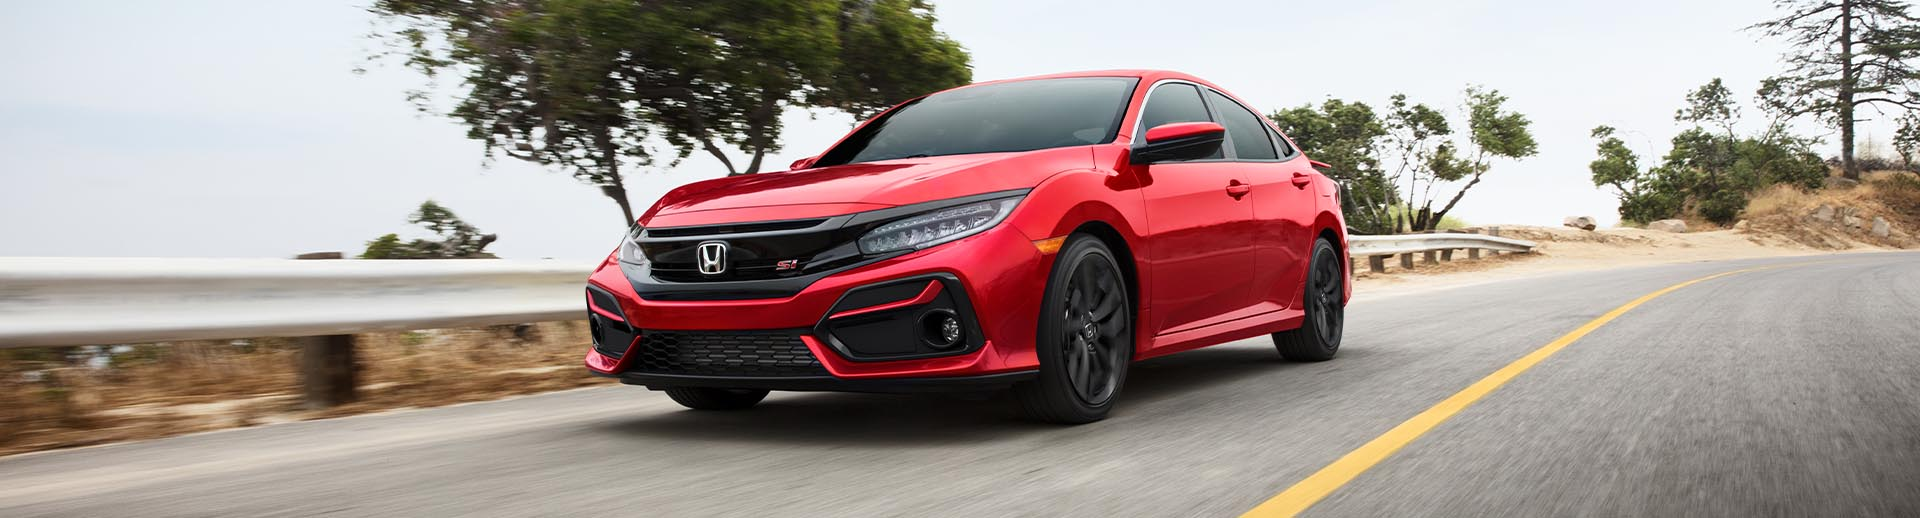 2020 Honda Civic Lifestyle Photo